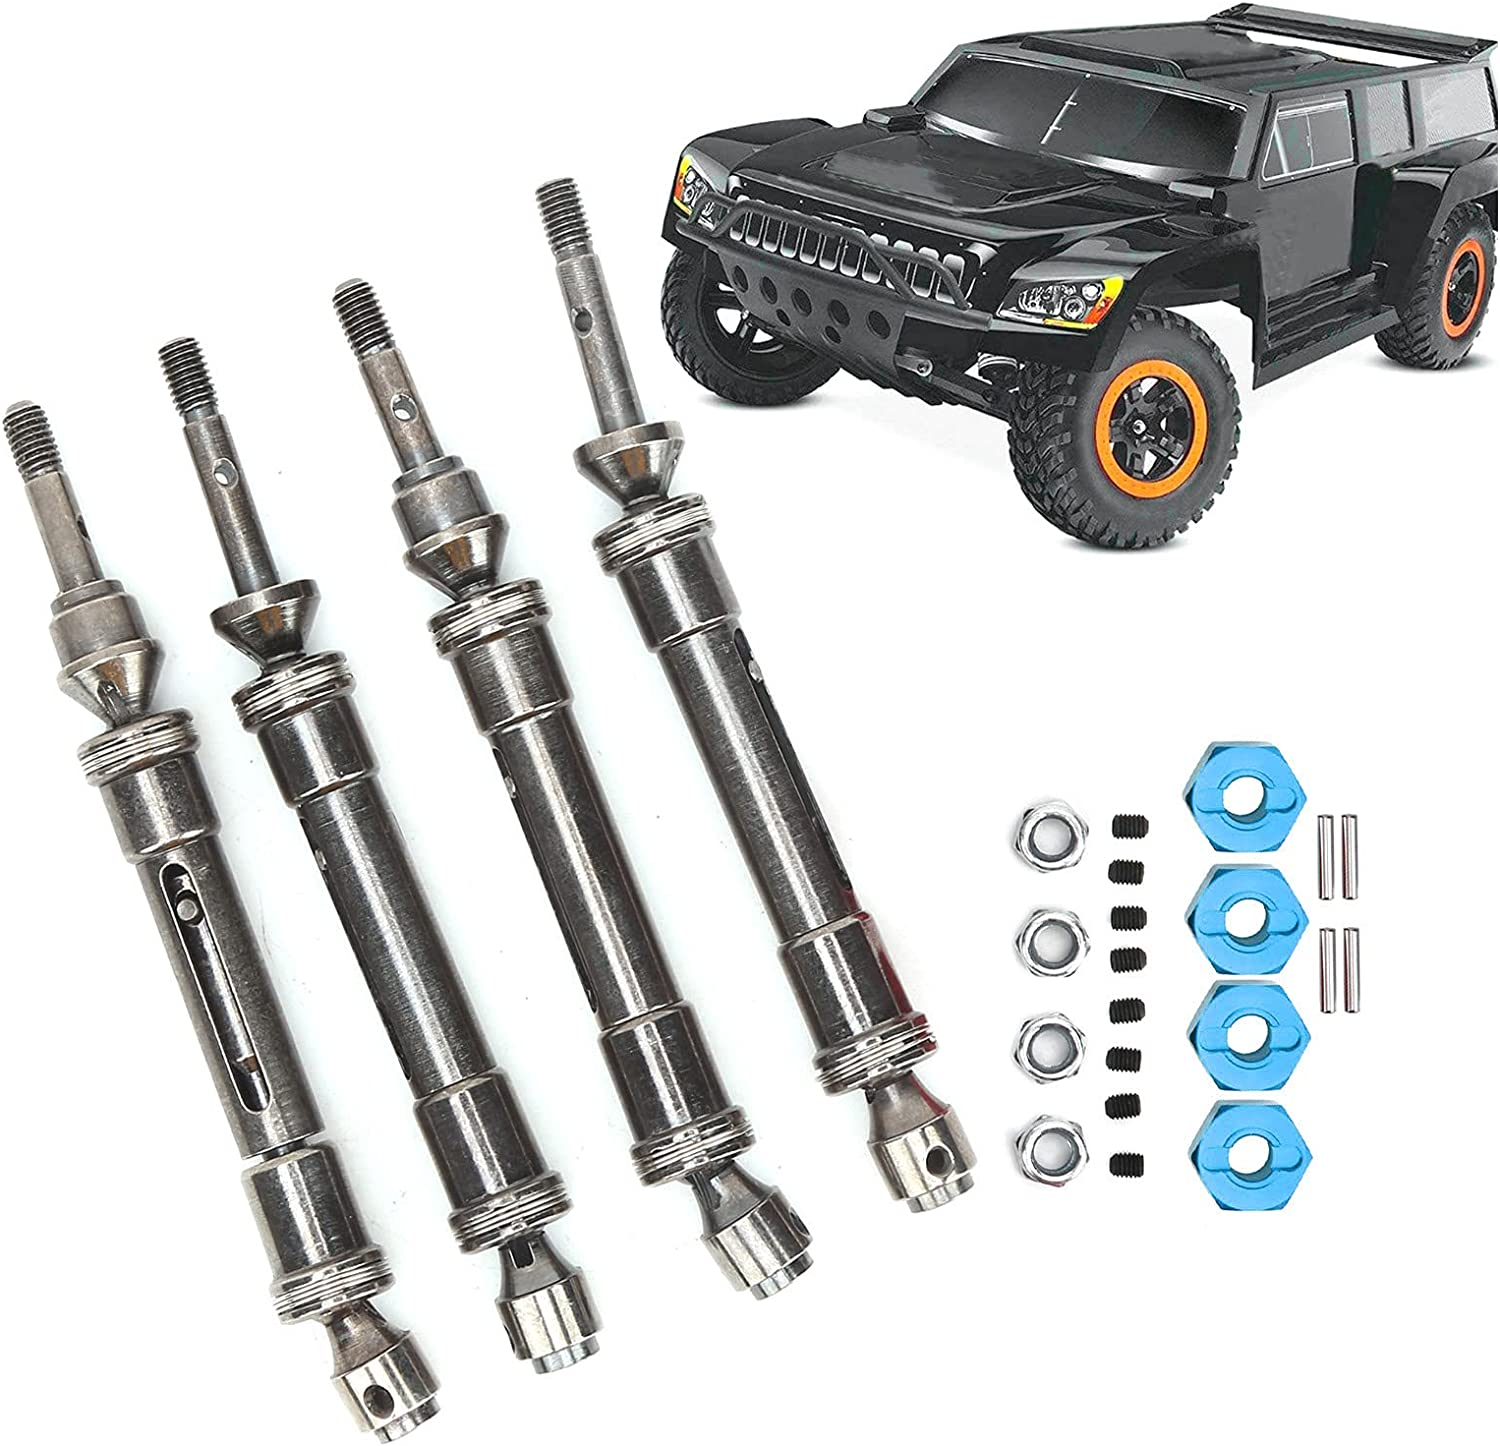 Luroze Drive ! Super beauty product restock quality top! Shaft and Connector Beatiful RC Car Atlanta Mall Set Ligh